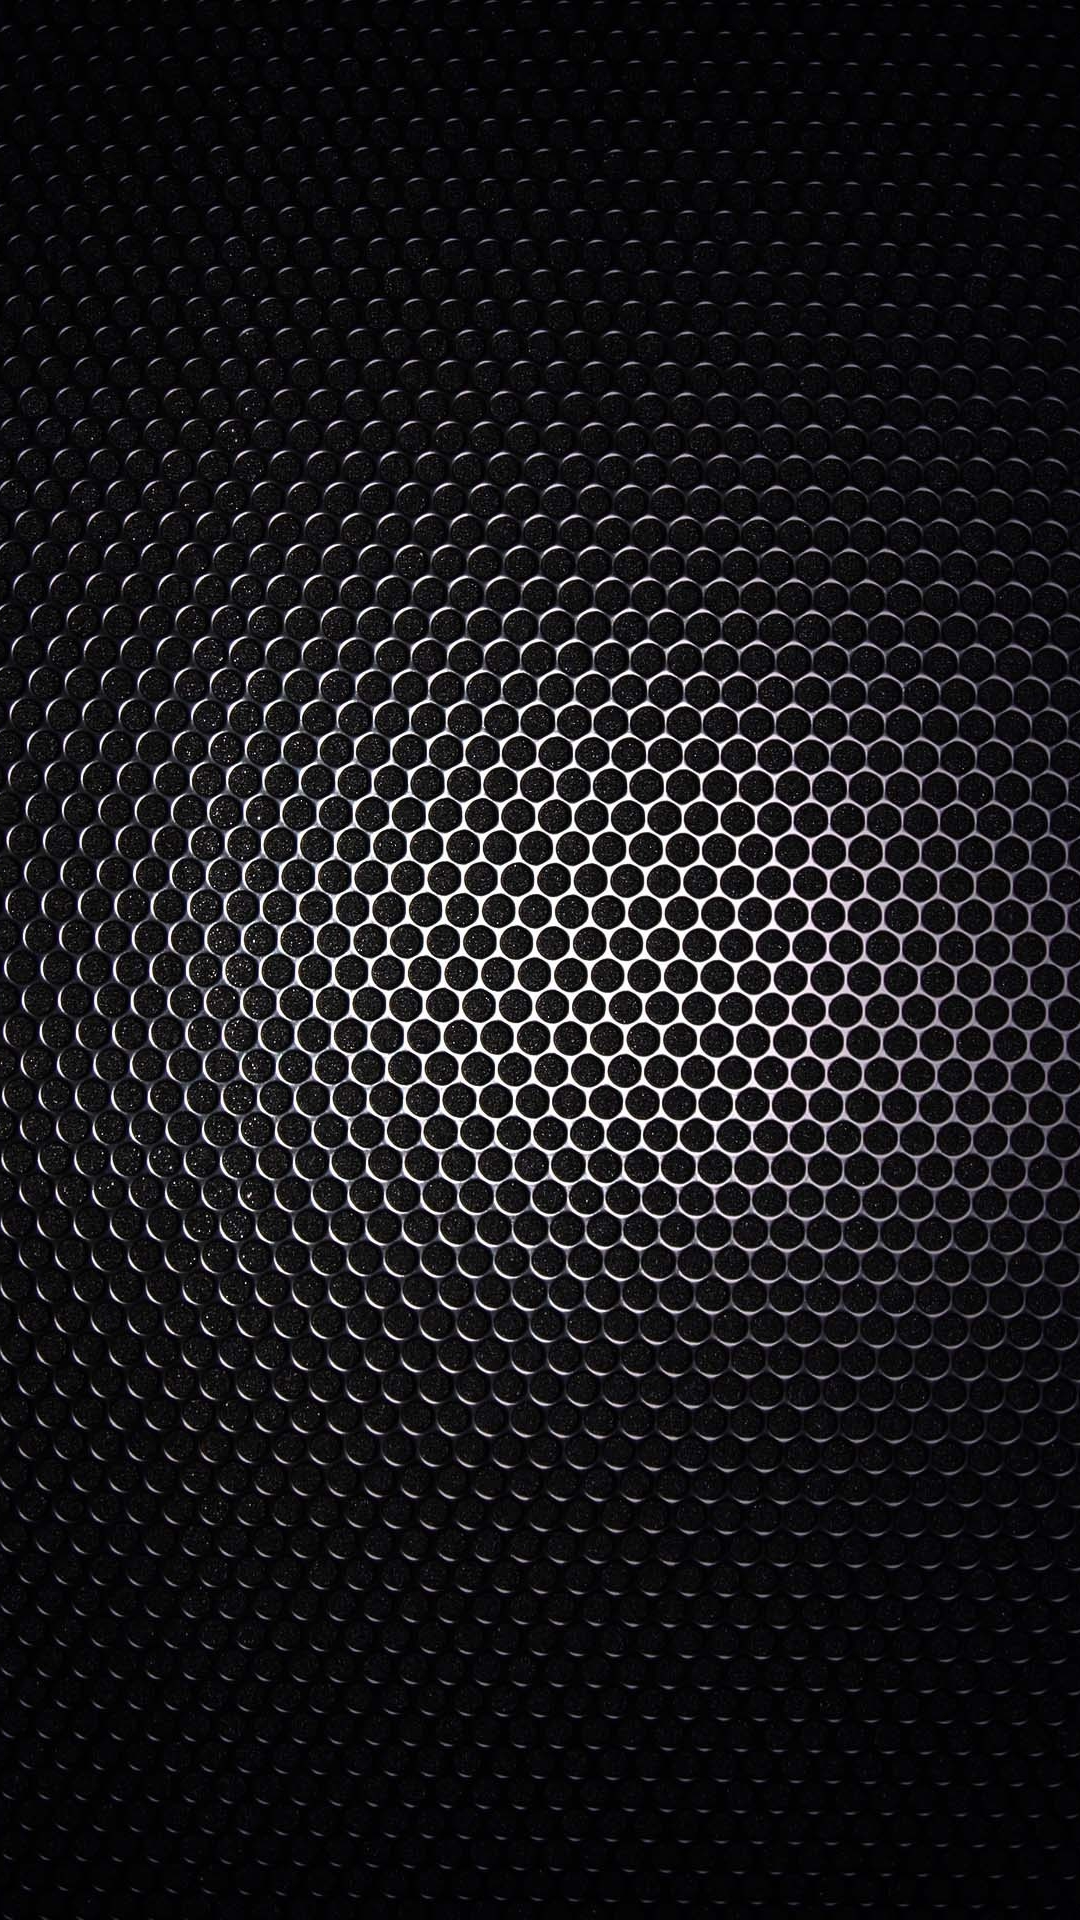 Wallpaper For Galaxy S4